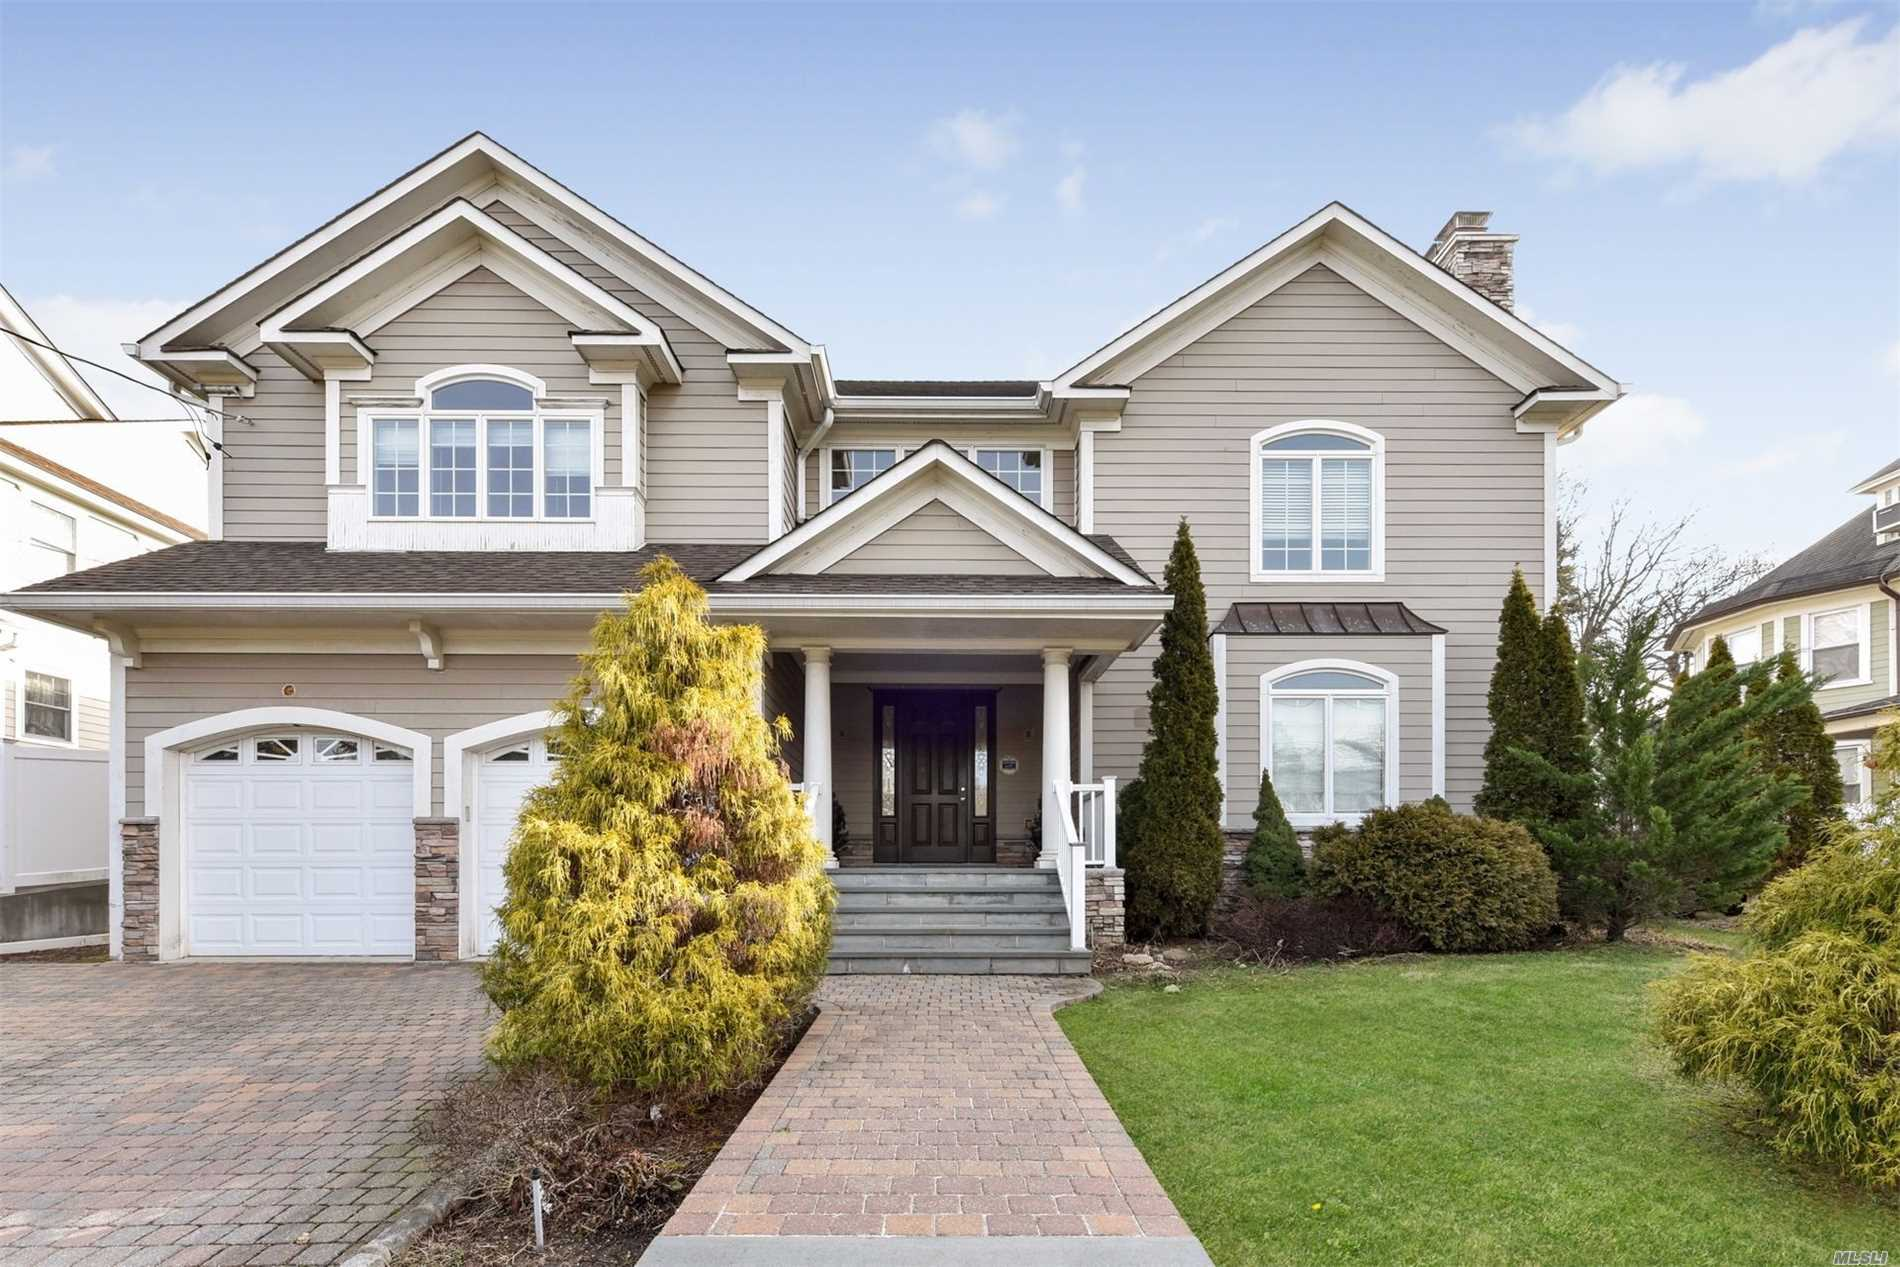 Photo of home for sale at 89 Kellogg St, Oyster Bay NY